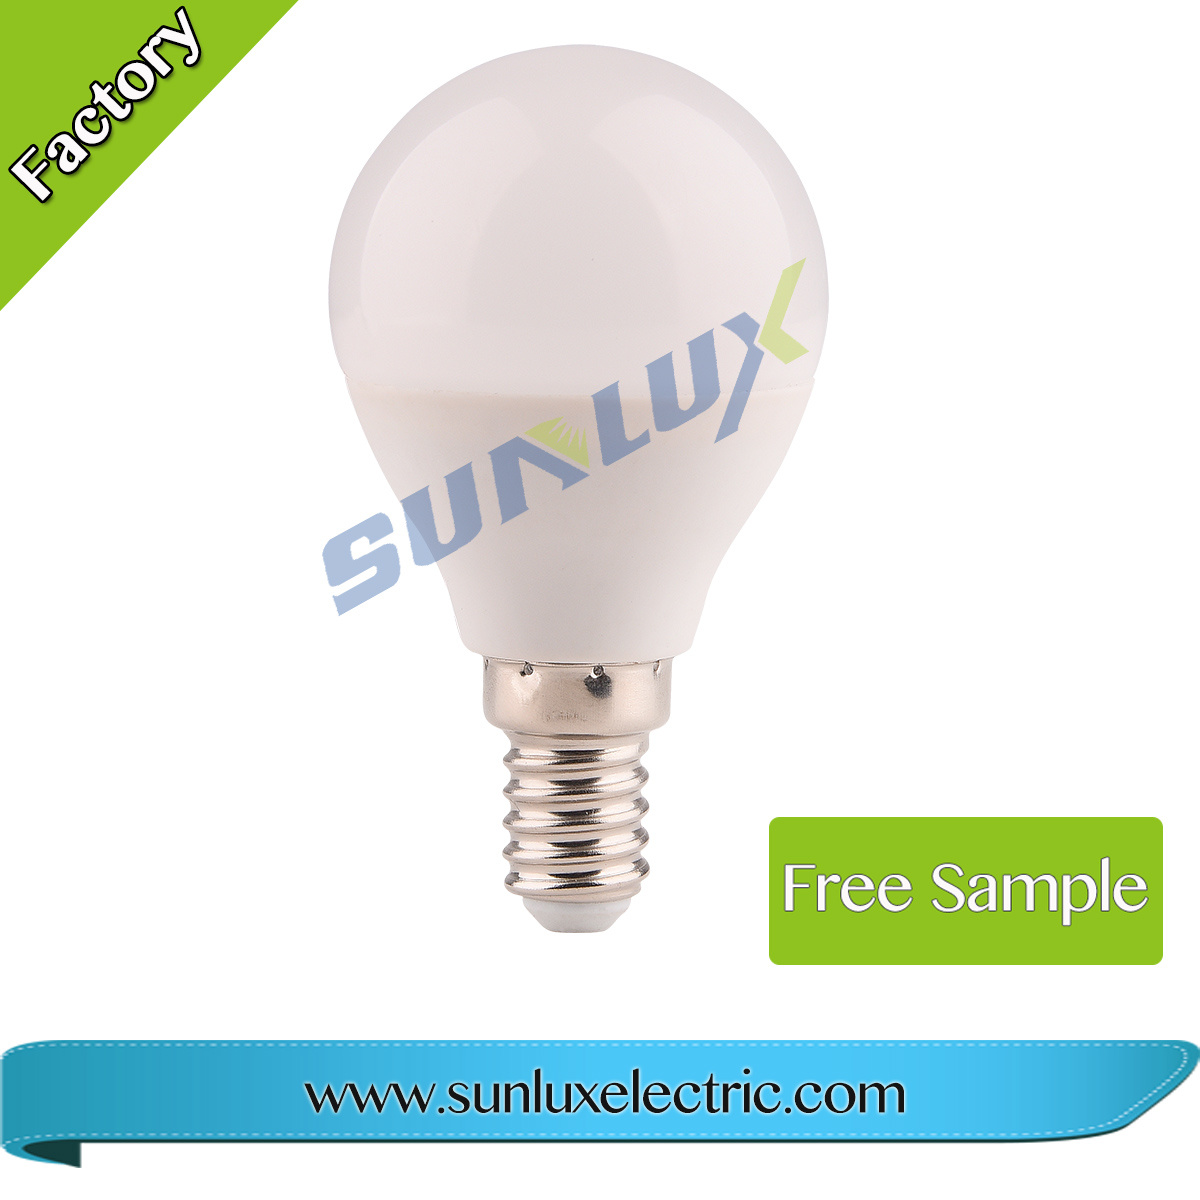 lighting of daylight dw units bulbs equivalent a white pack us le led bulb light